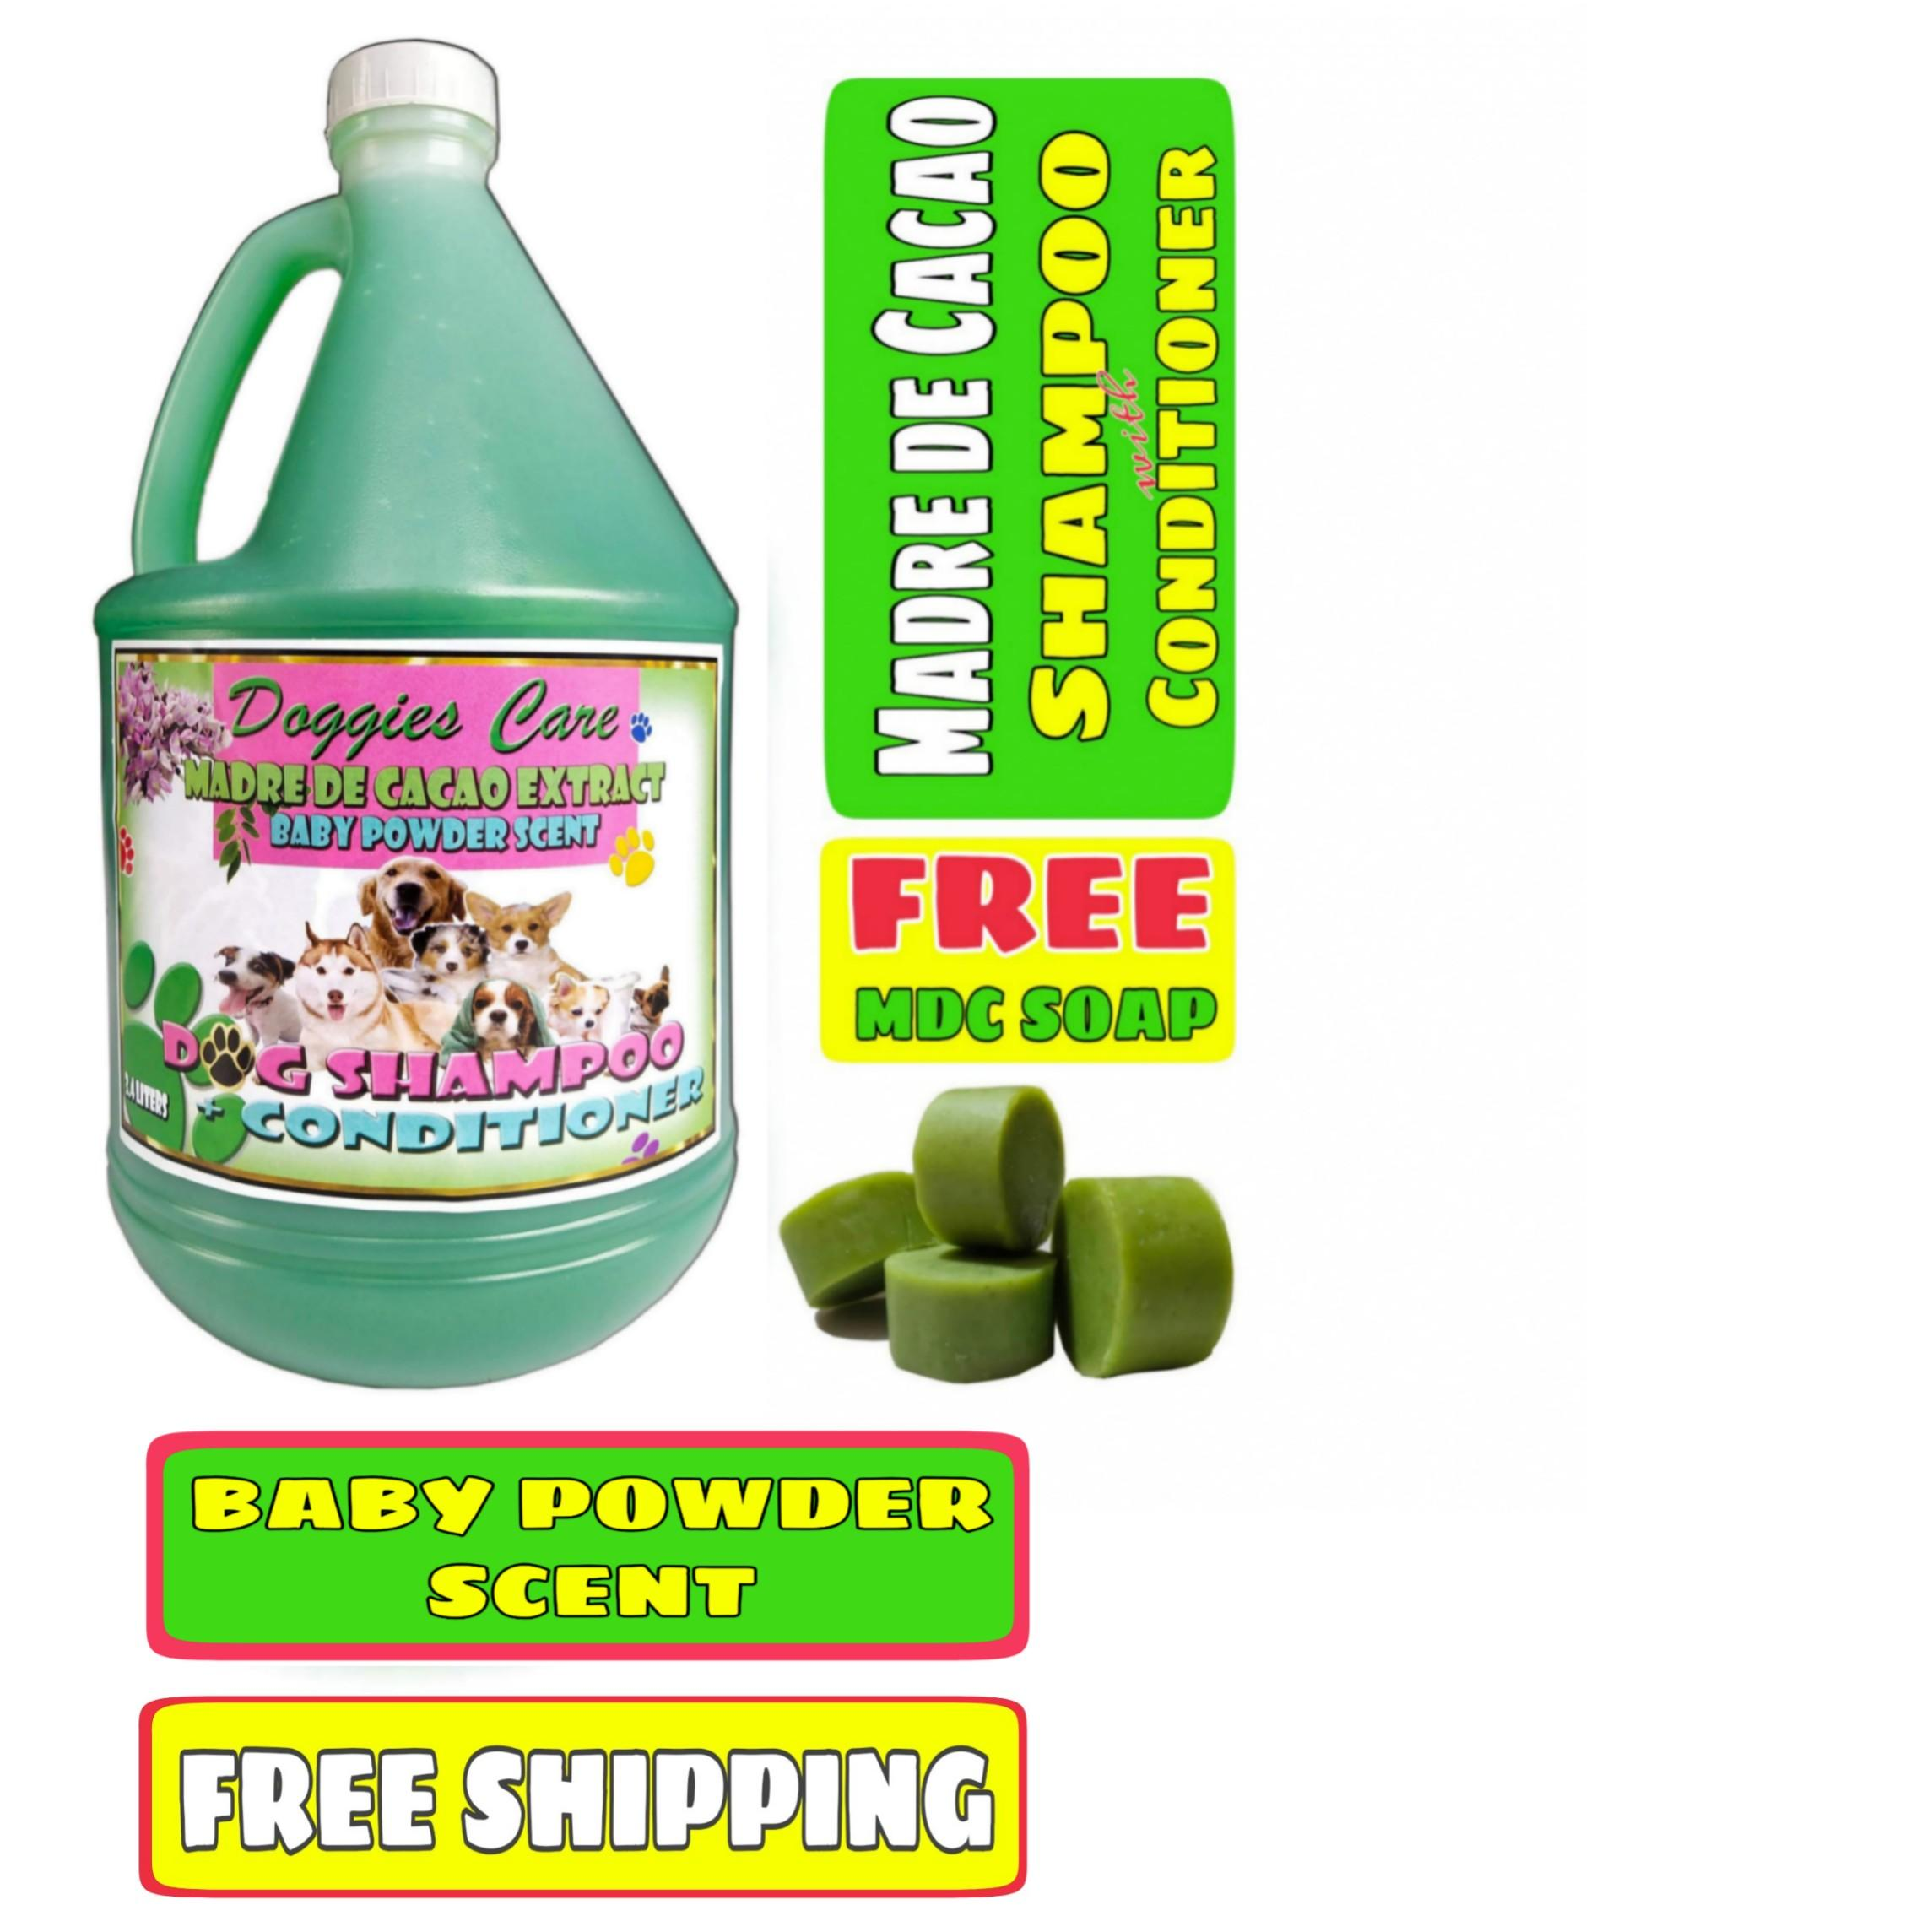 Madre de Cacao Shampoo & Conditioner with Guava Extract - Baby Powder Scent  1 Gallon Green FREE MDC SOAP 2pcs Anti Mange, Anti Tick and Flea, Anti